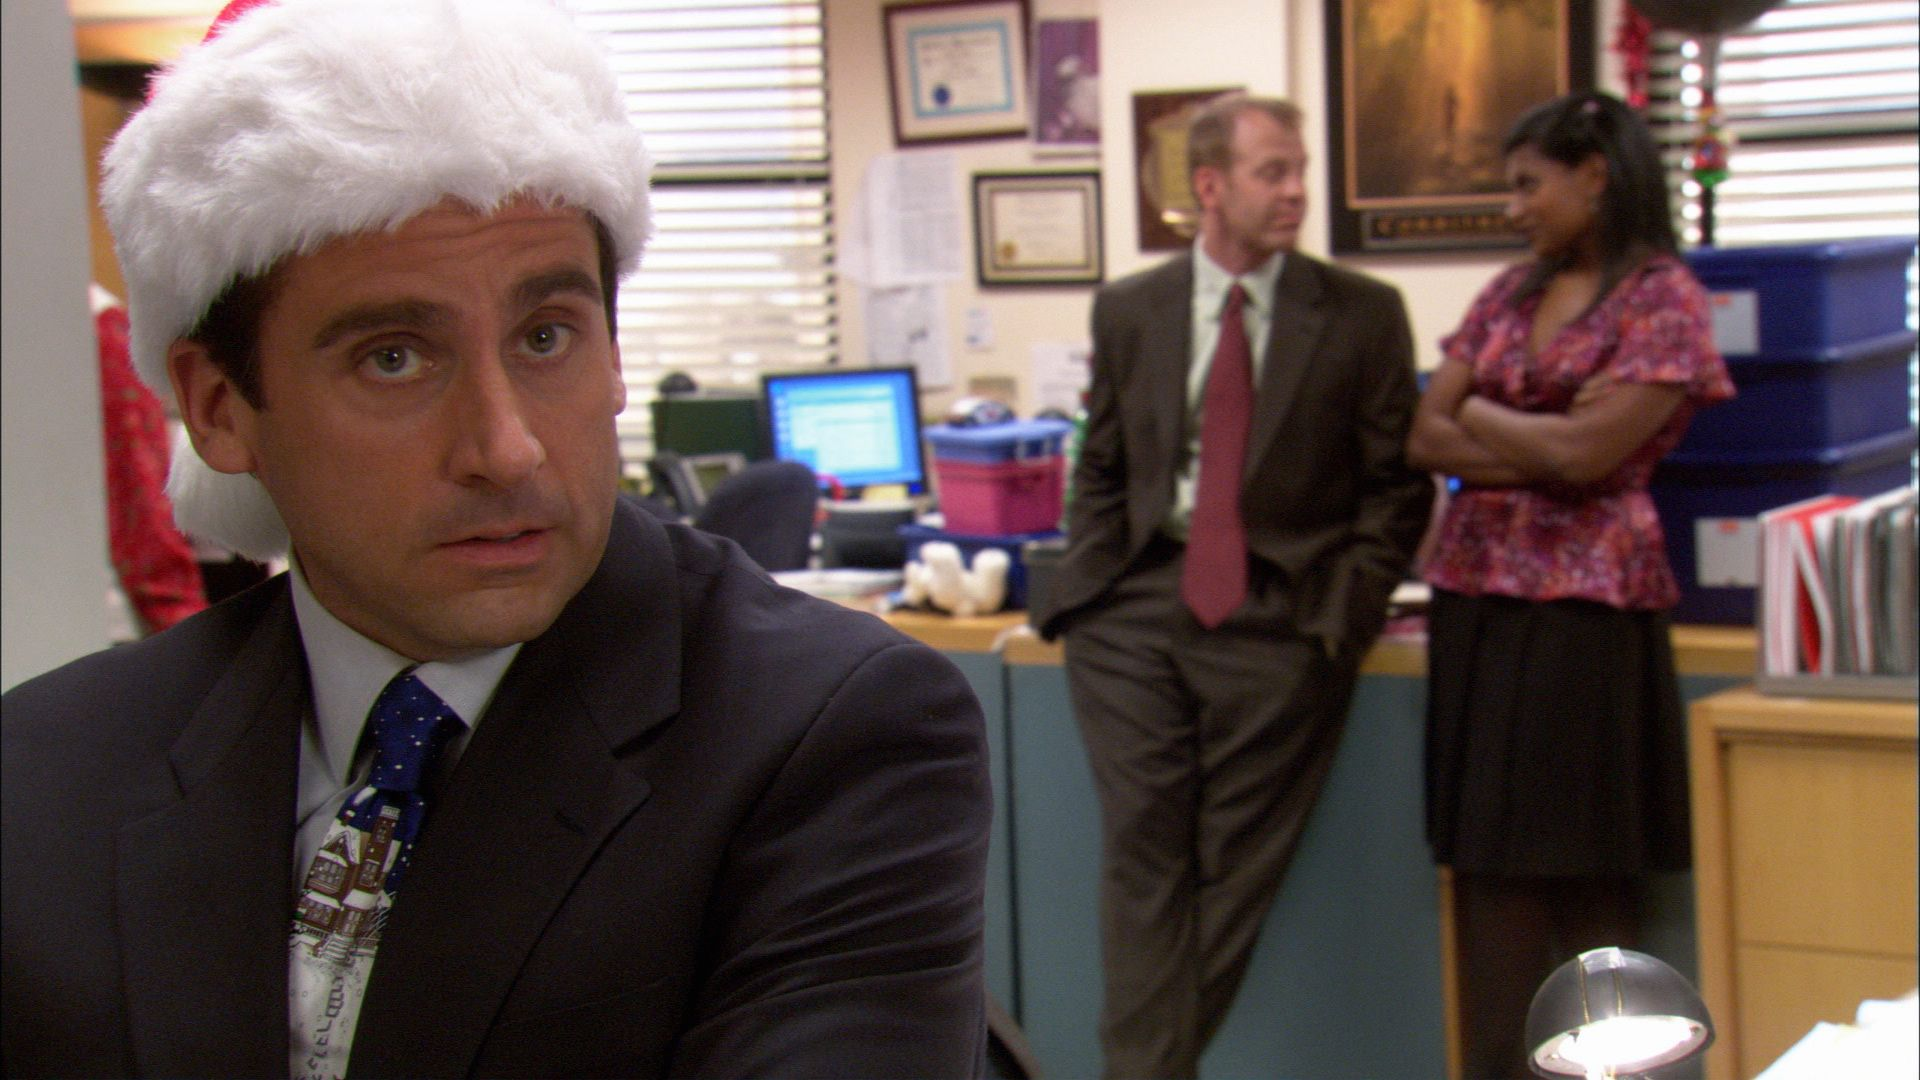 The Office - Season 2, Ep. 10 - Christmas Party - Full Episode ...